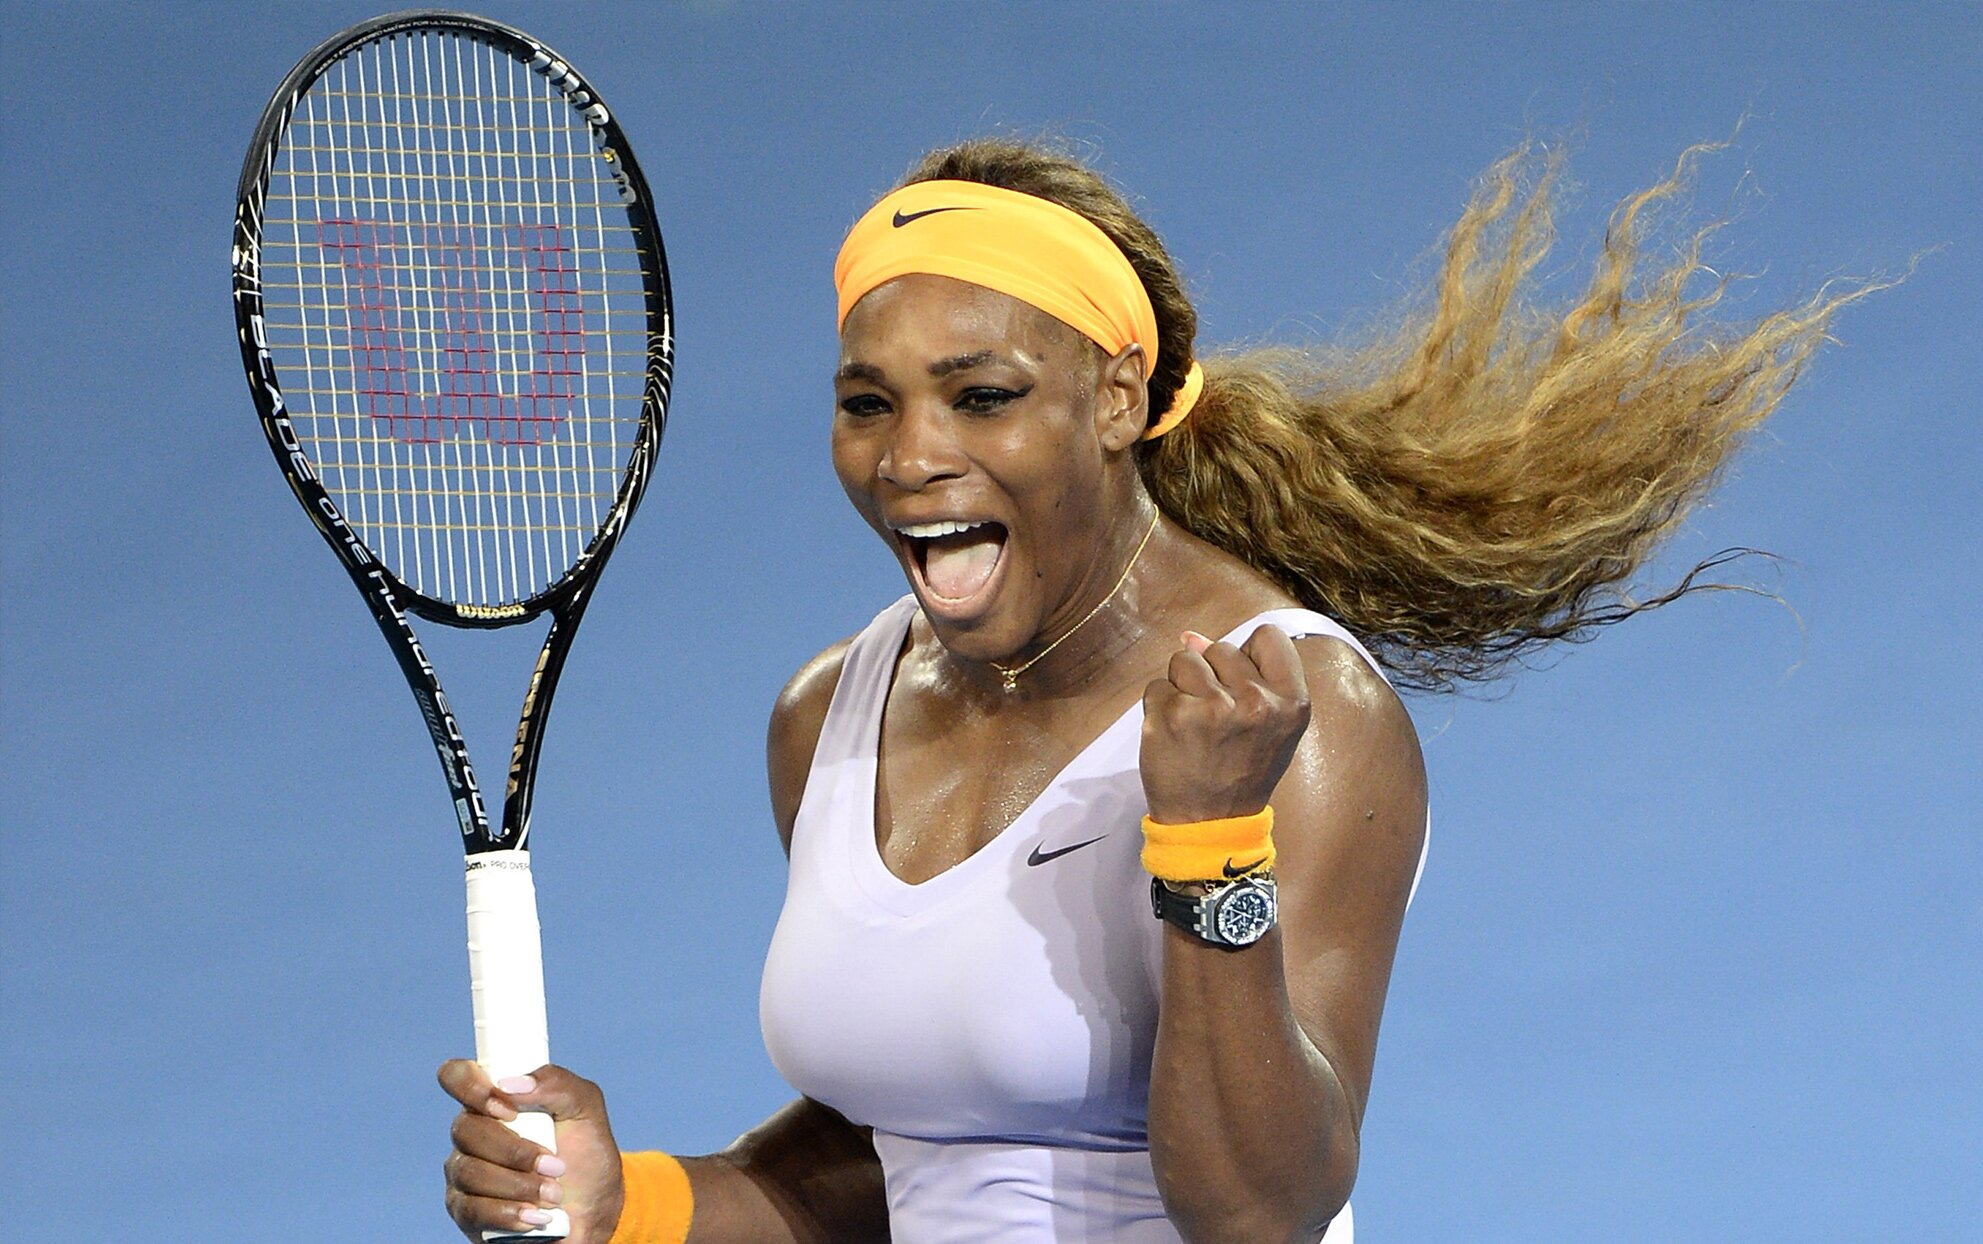 Serena Williams with a tennis racket on a blue background